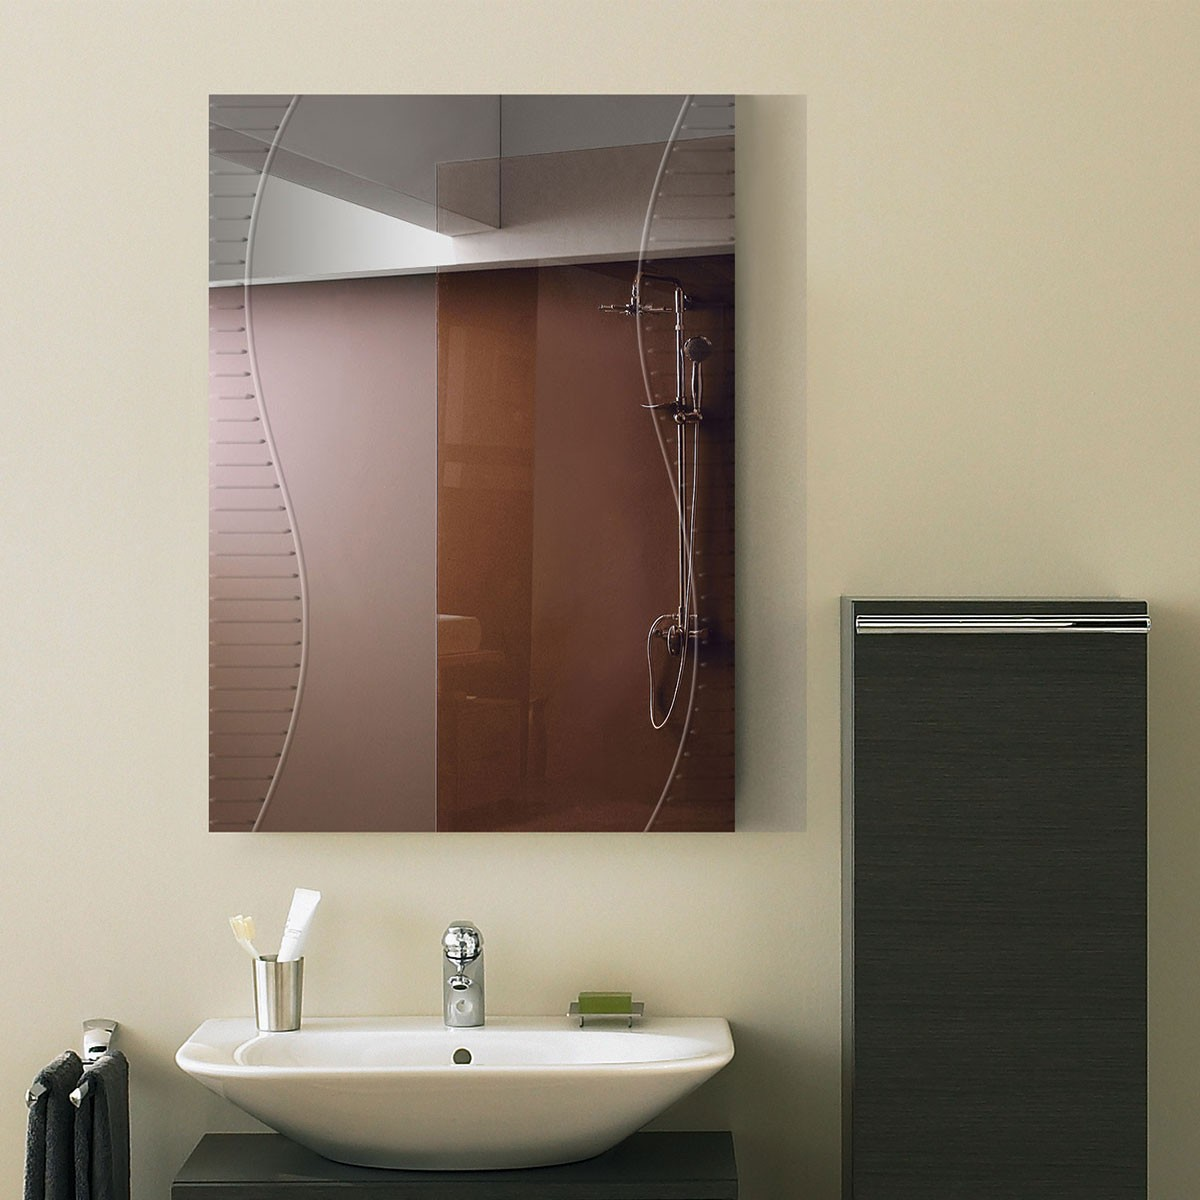 20 x 28 In. Wall-mounted Rectangle Bathroom Mirror (DK-OD-B068B)